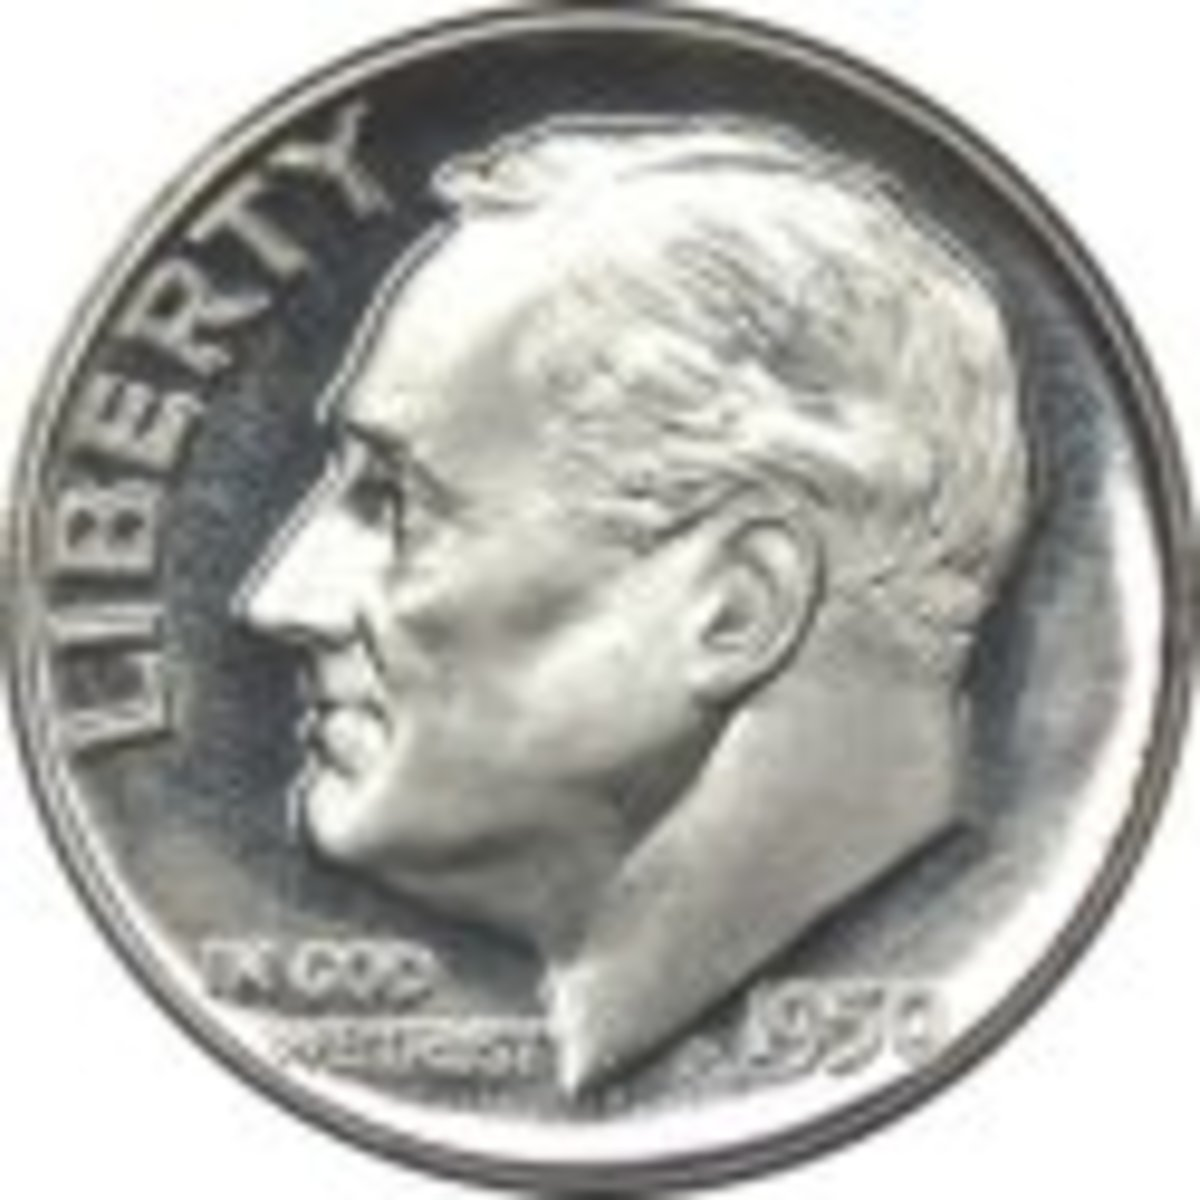 One of the most common pieces of Silver you will find is the Roosevelt Dime.